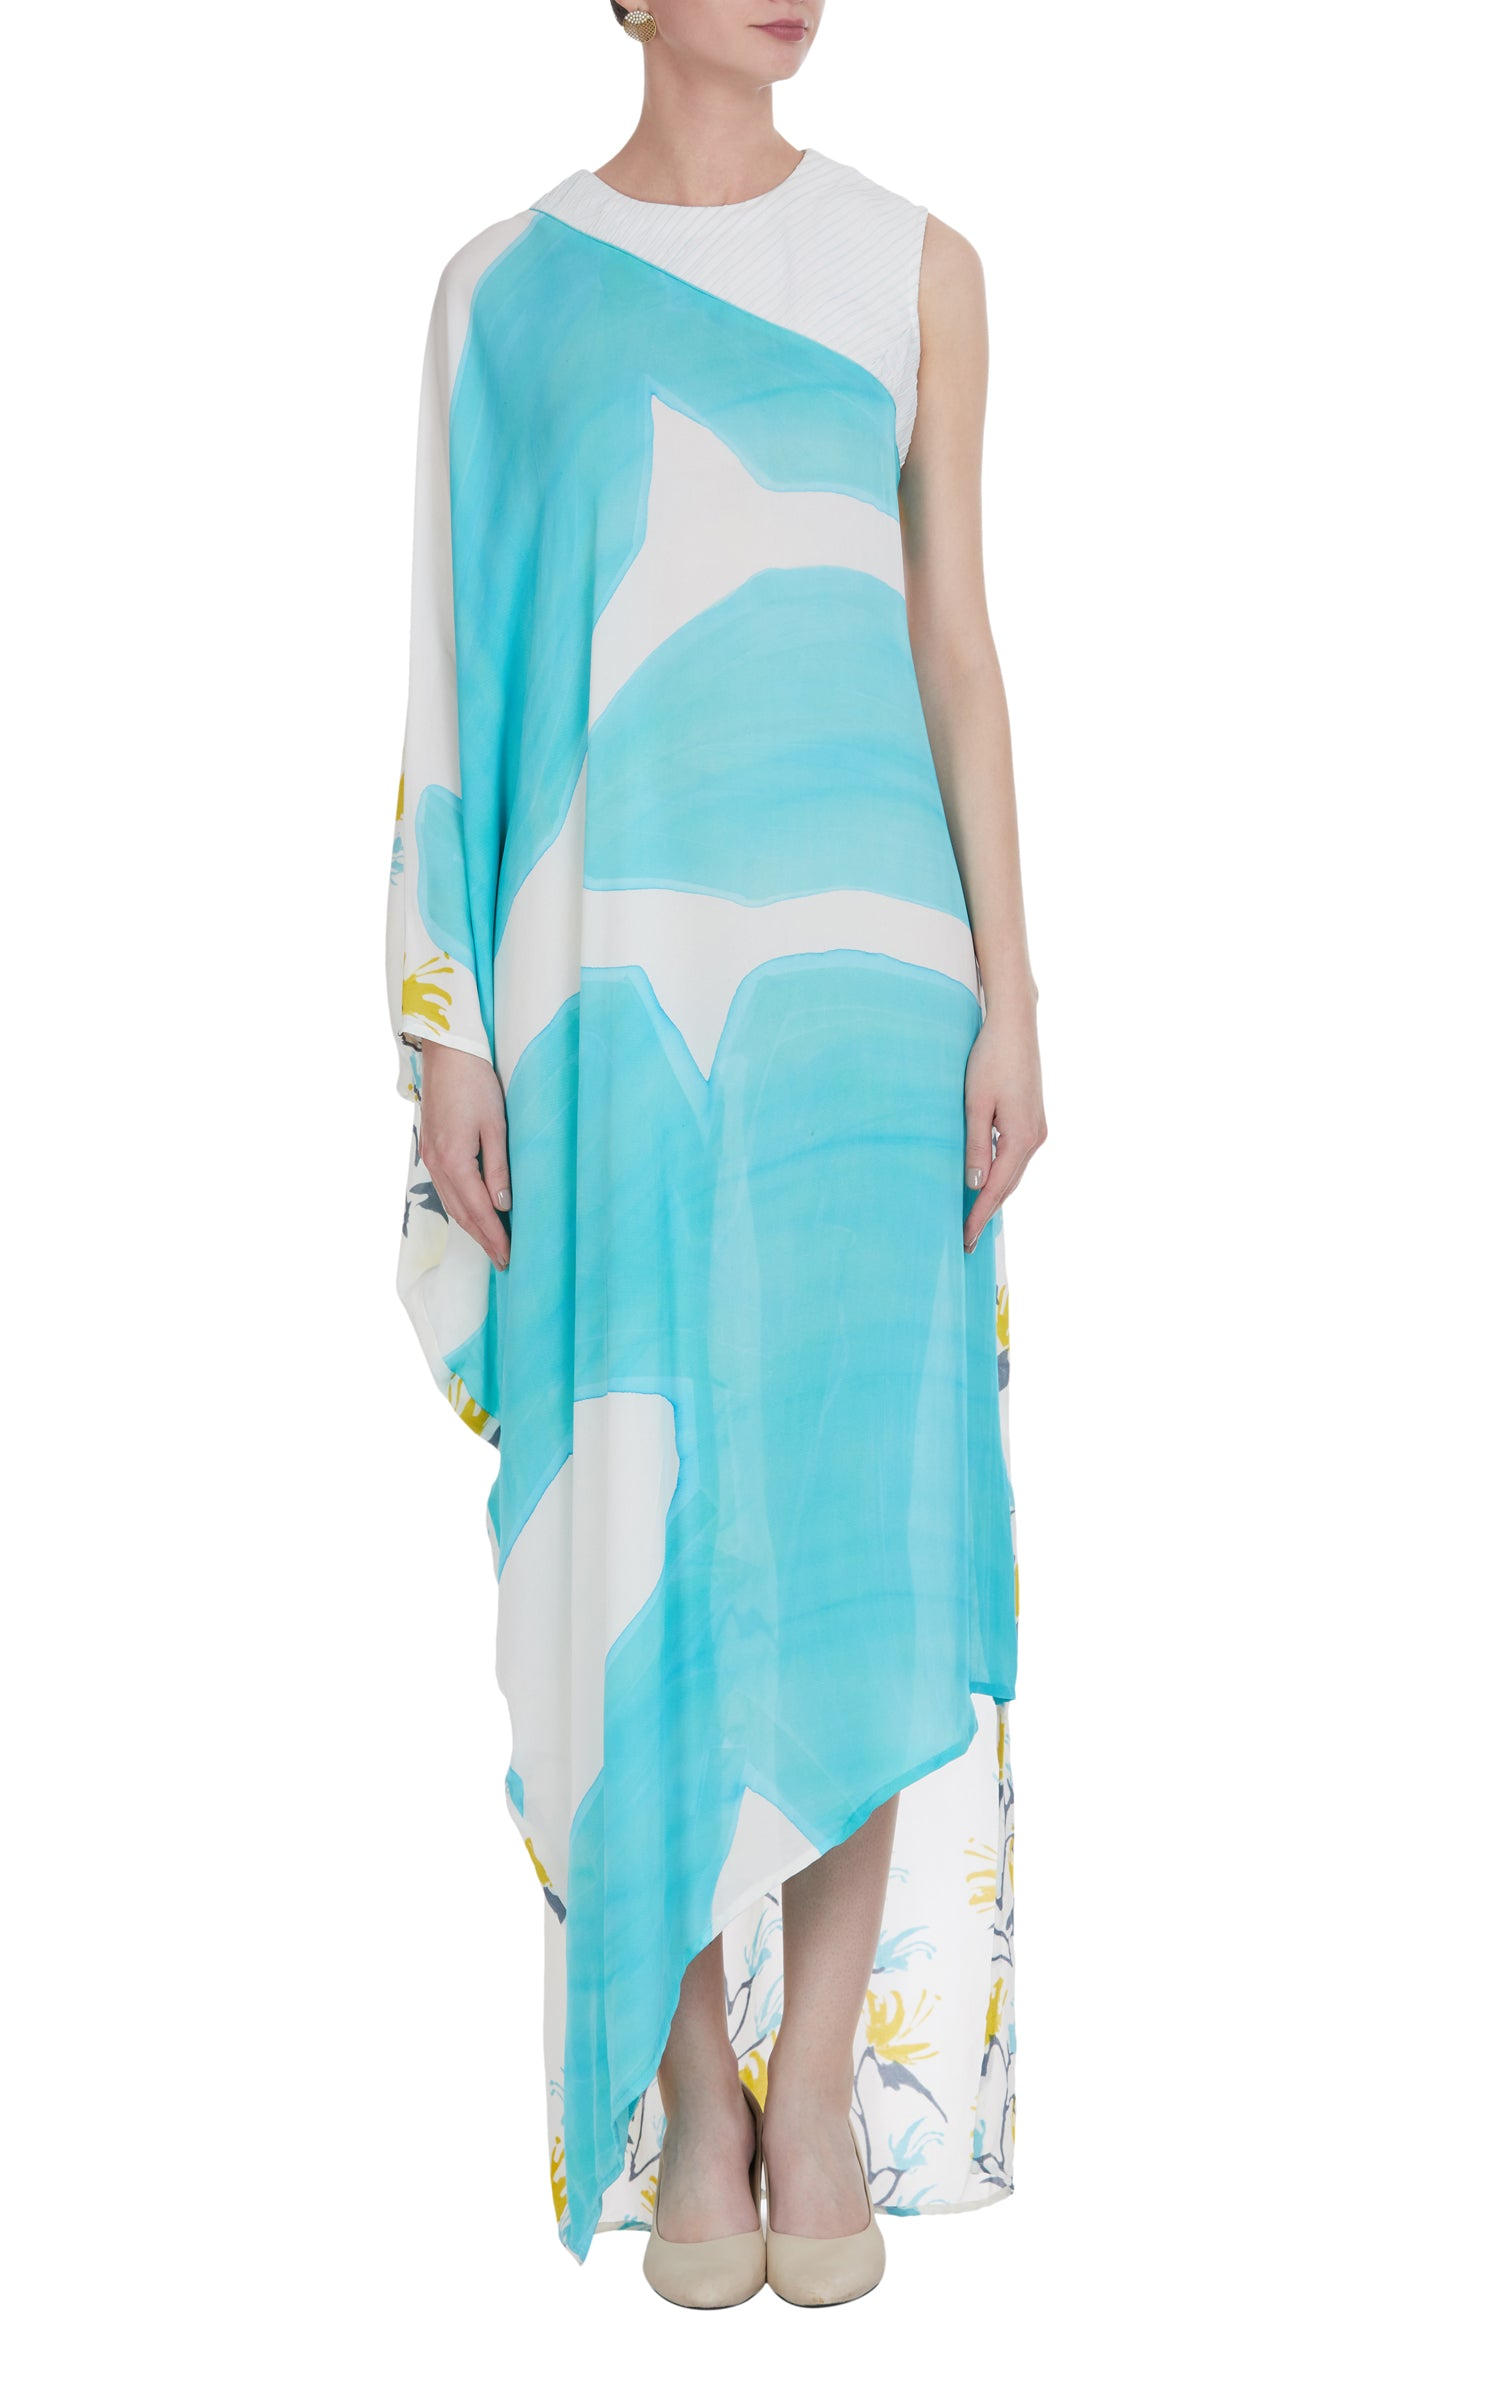 Block Printed & Abstract Painted Asymmetrical Maxi Dress